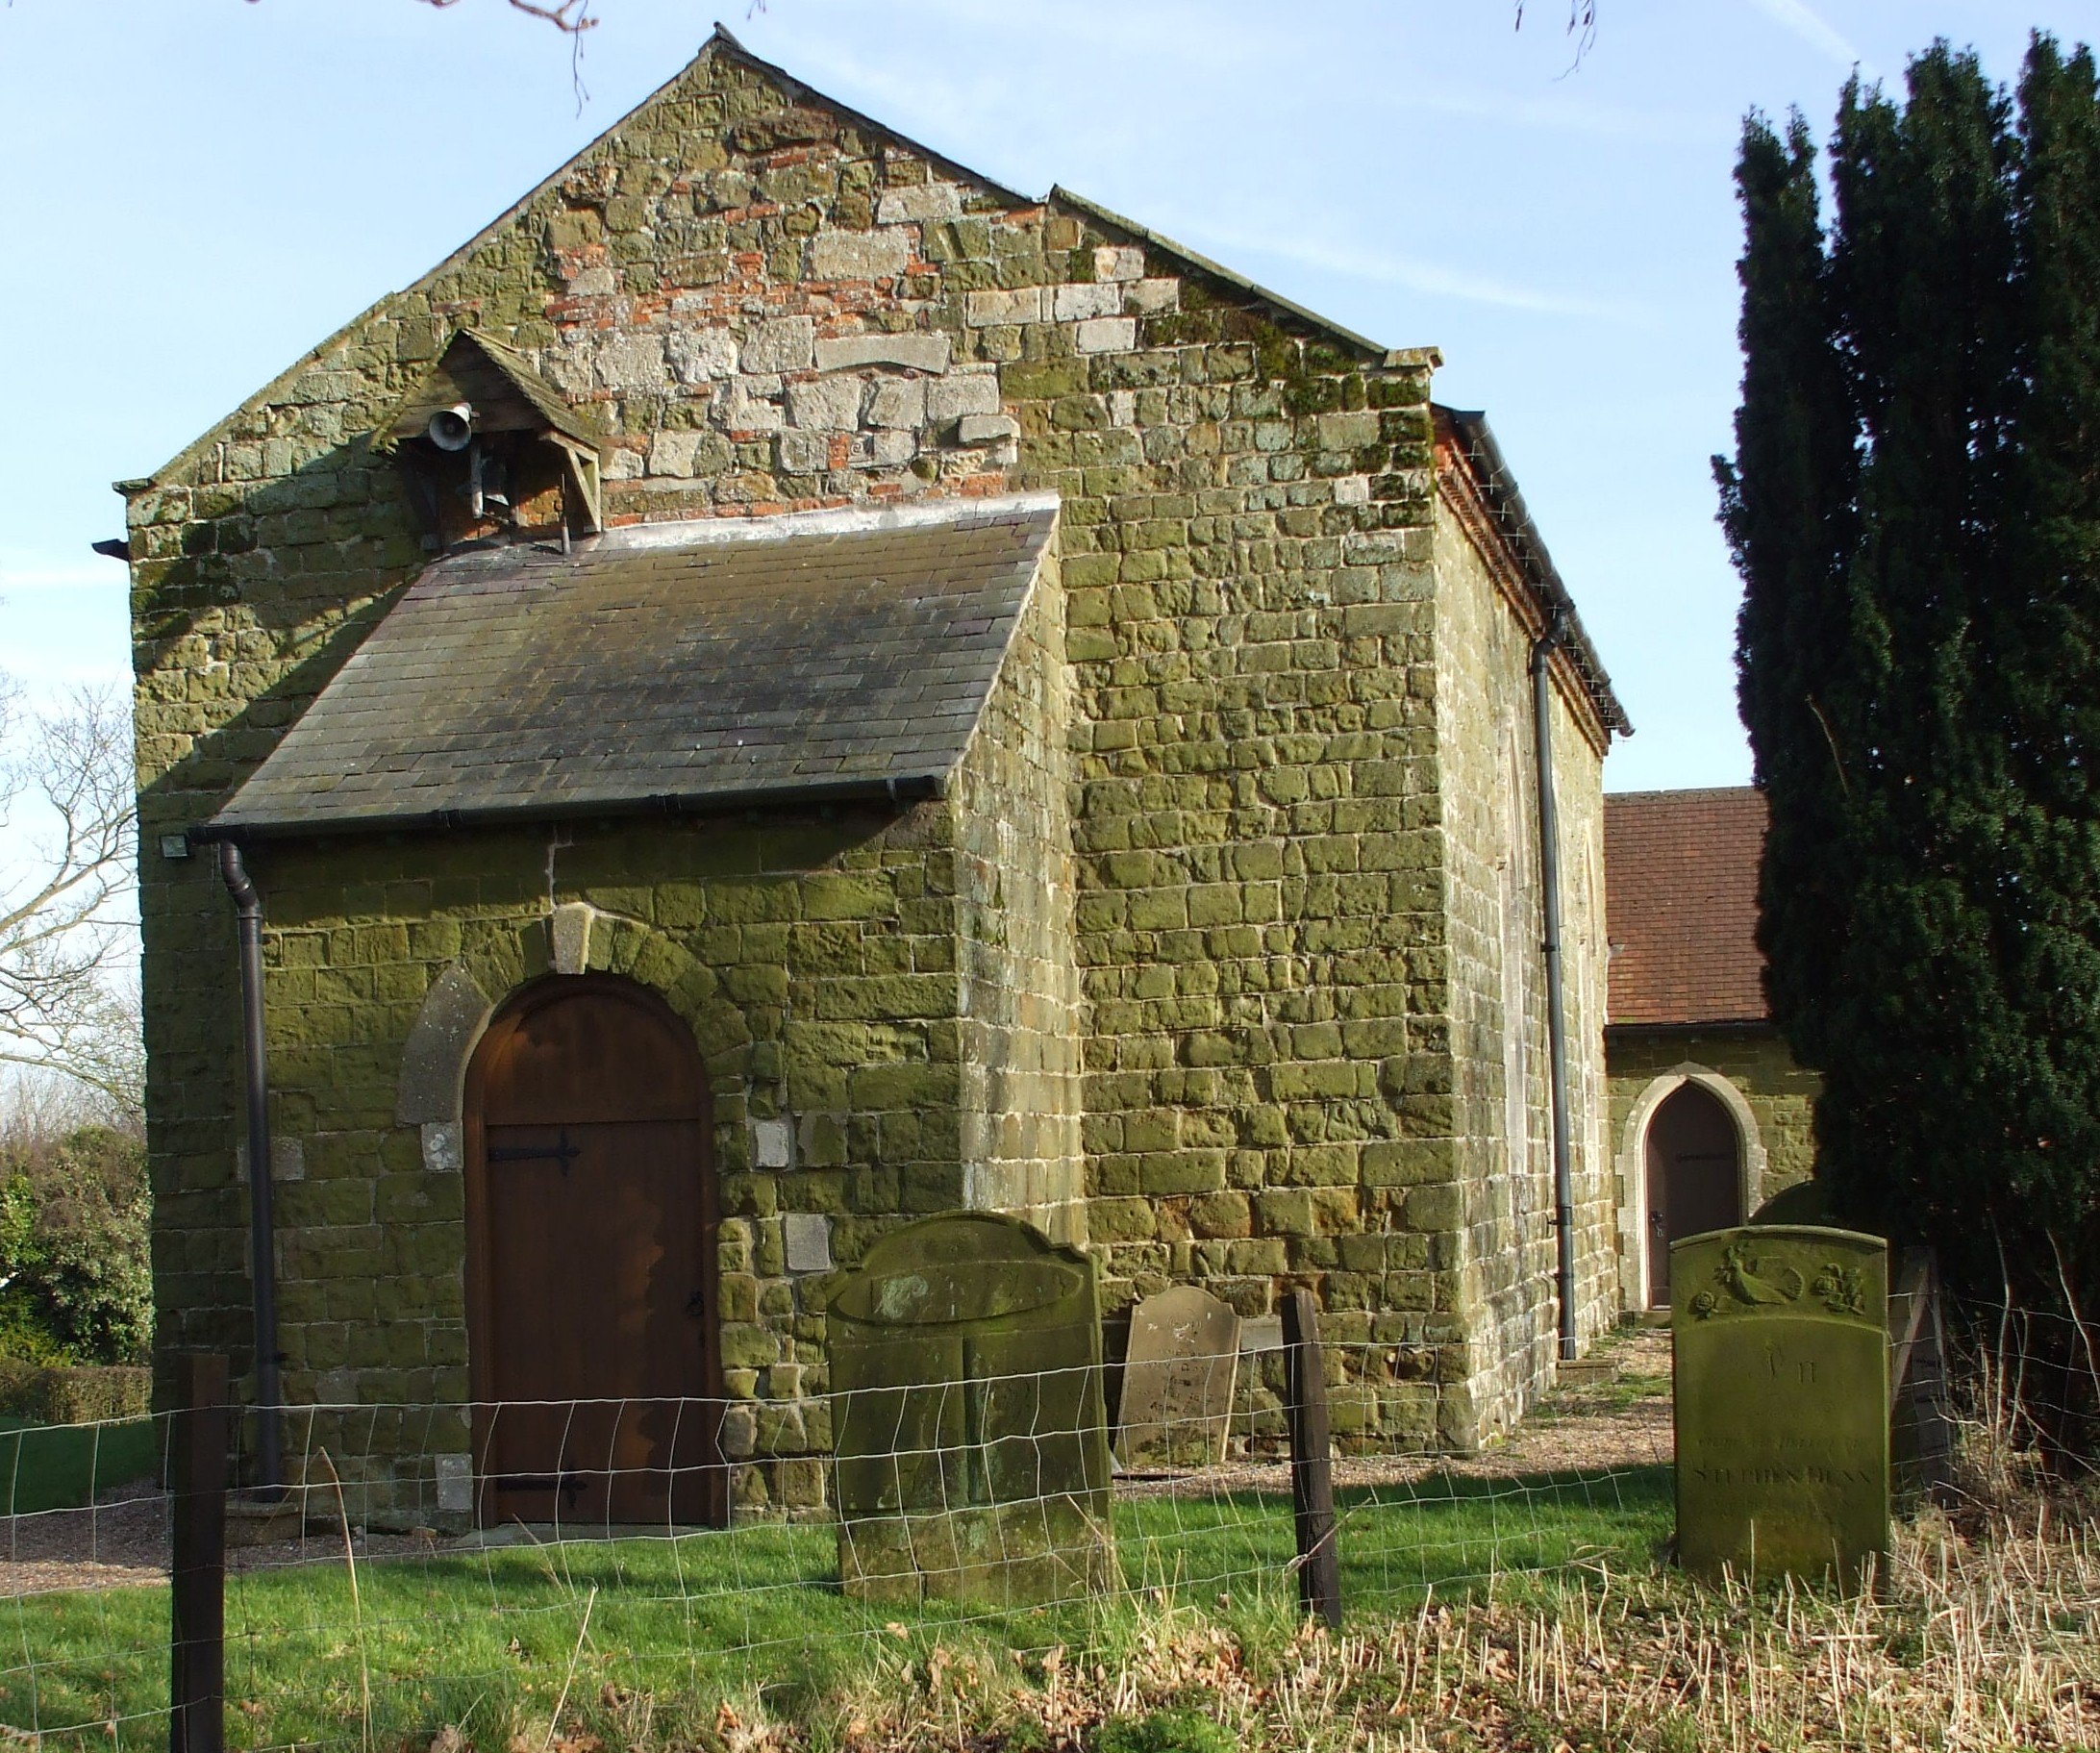 Belchford Sts Peter and Paul church